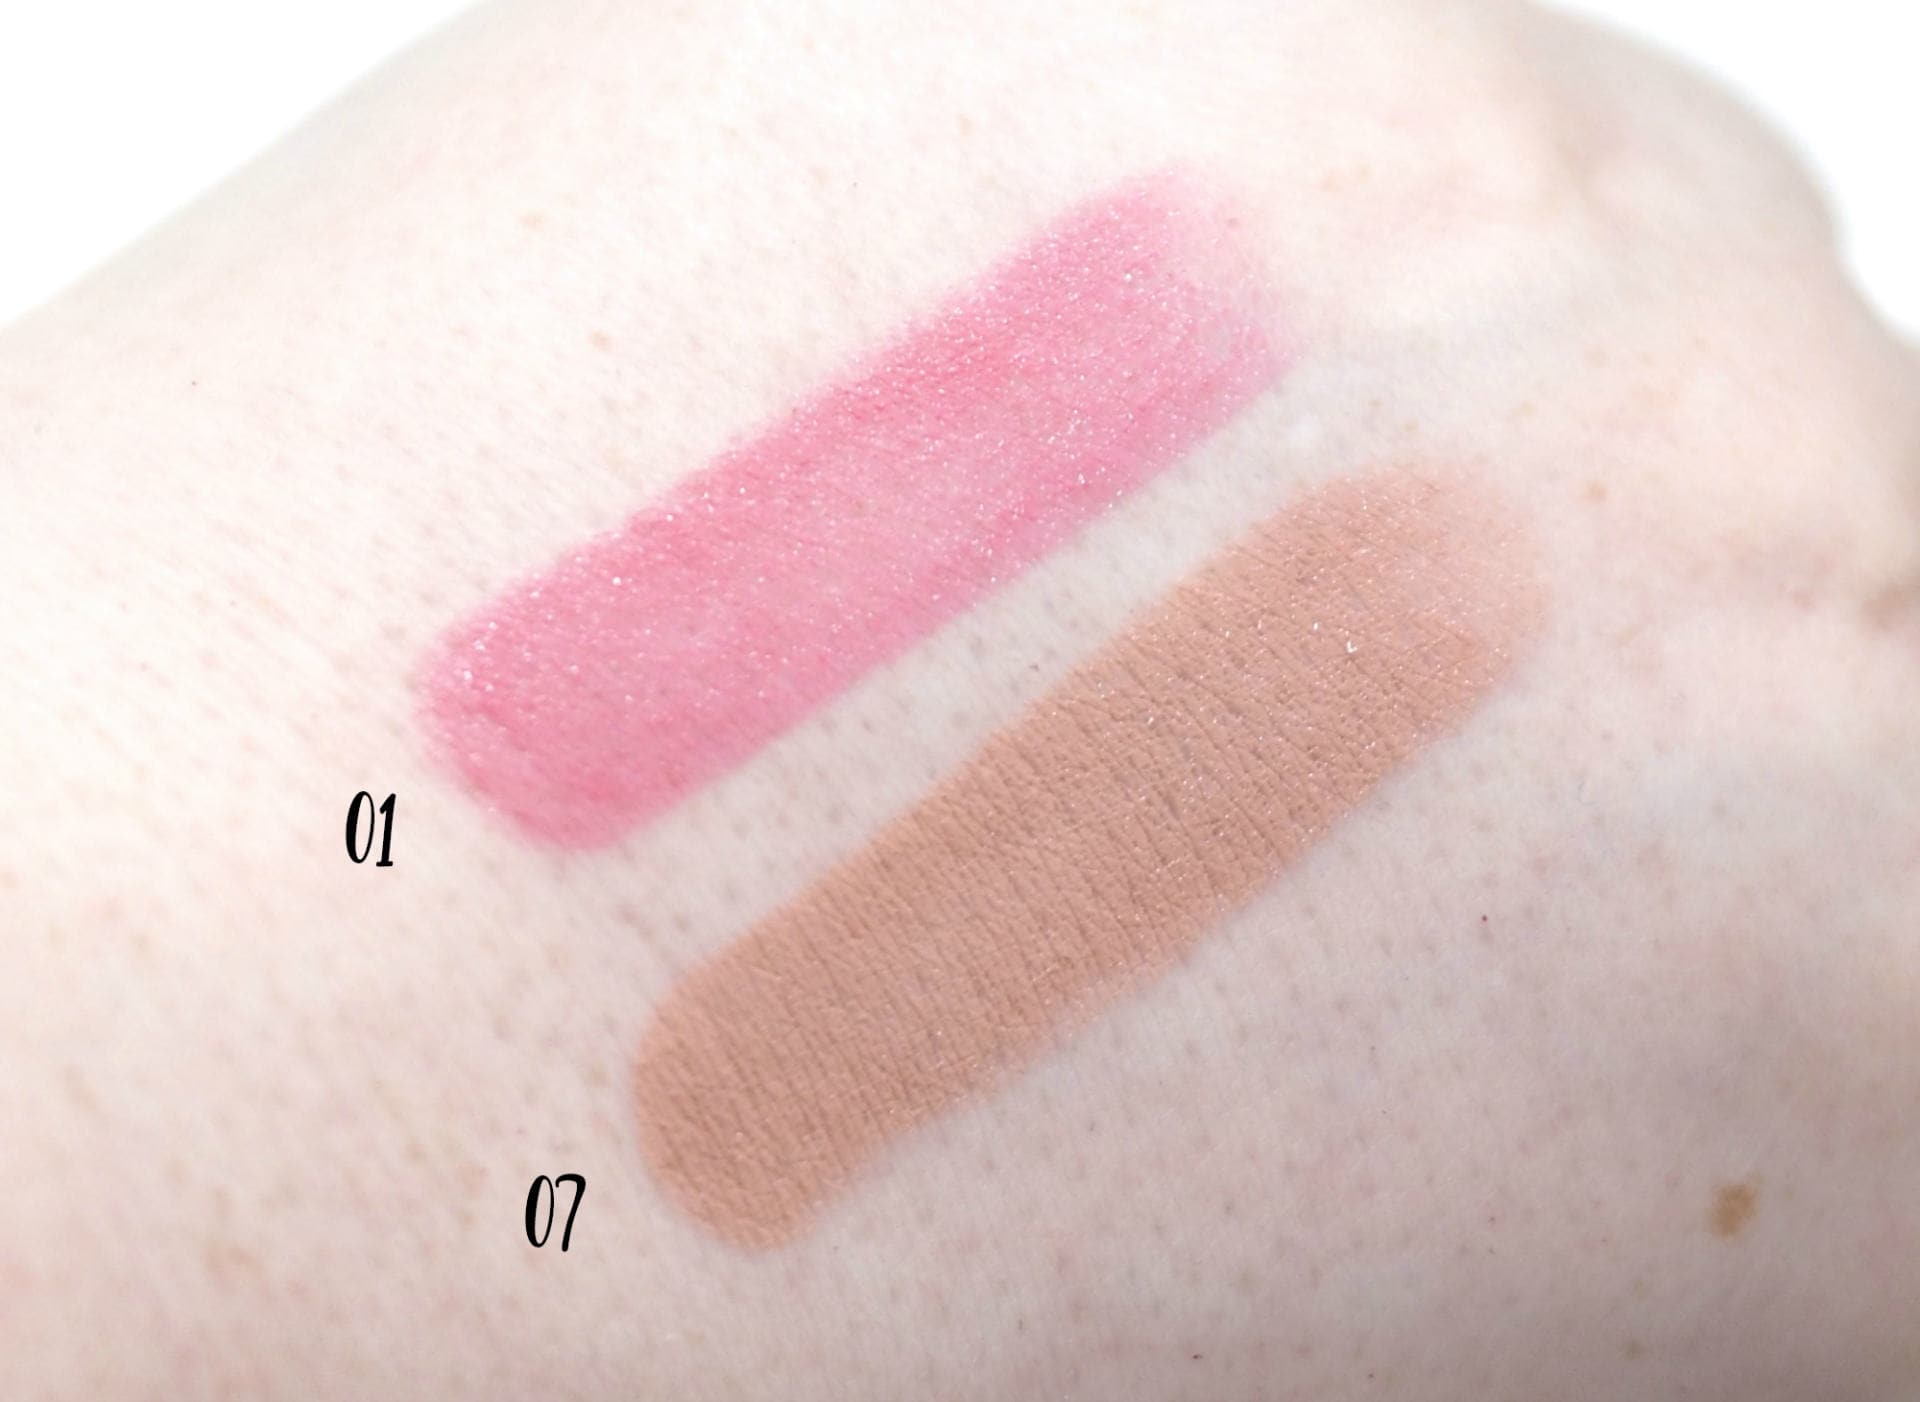 Coastal Scents Lipsticks Review and Swatches